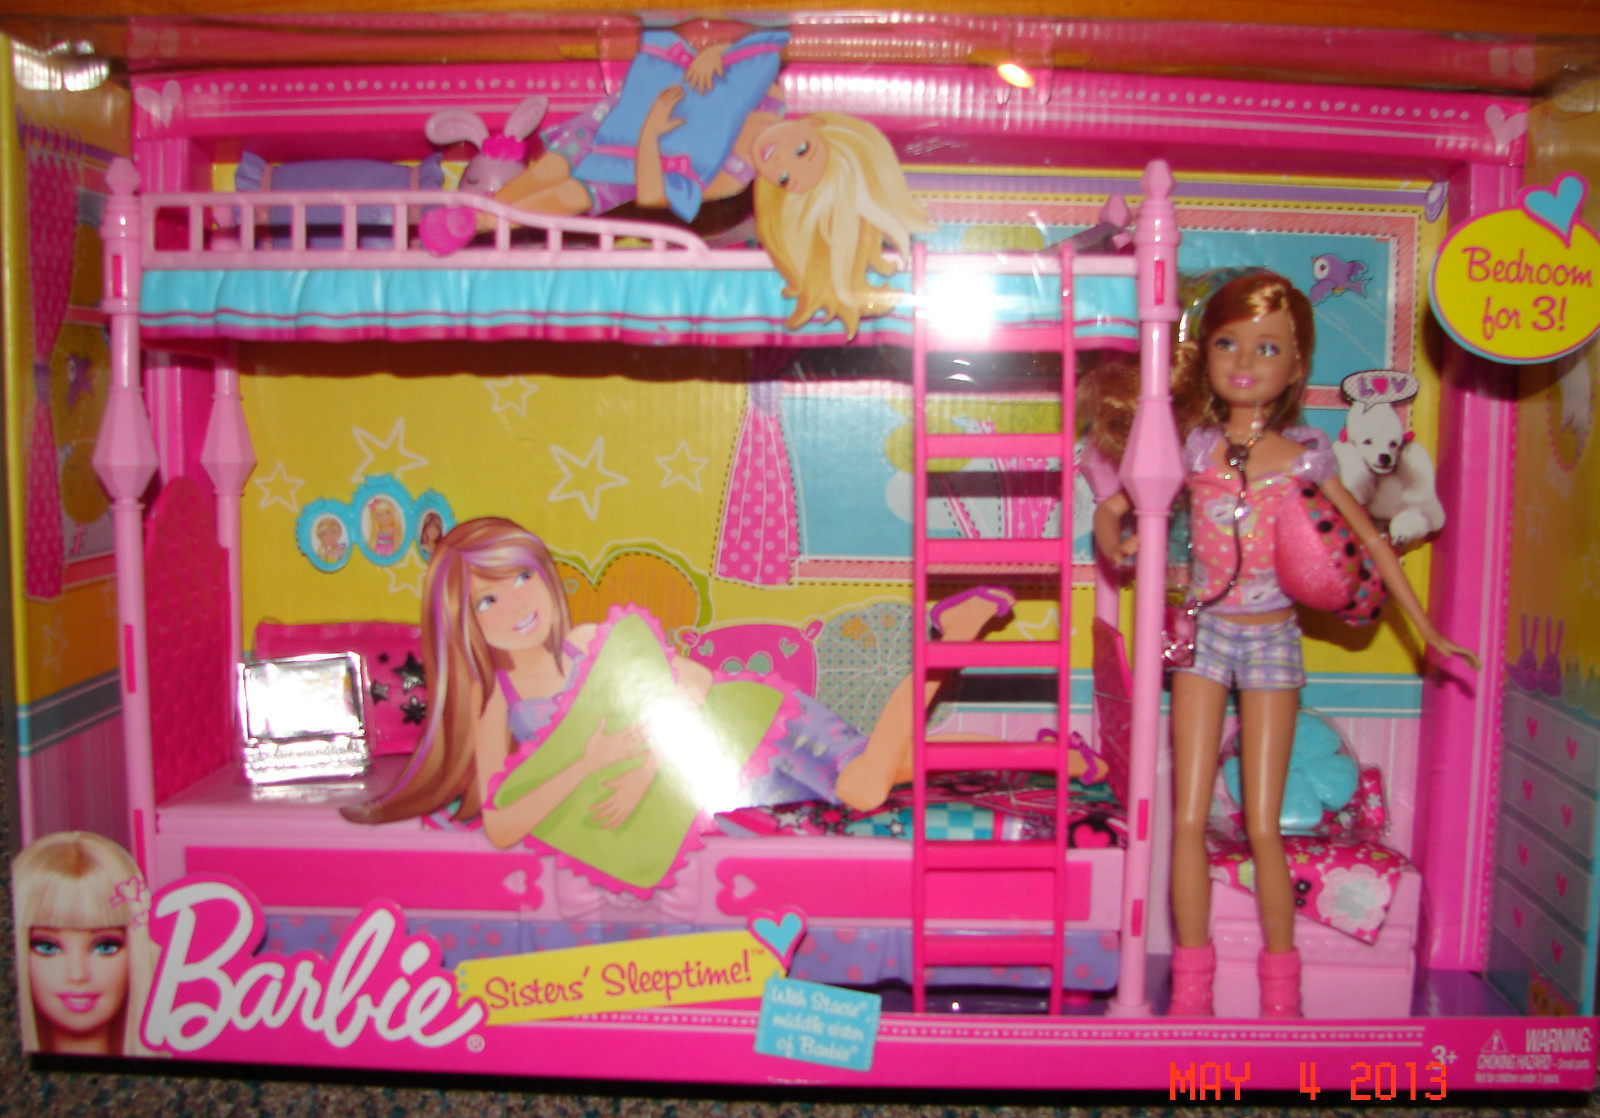 2011 Barbie SISTERS SLEEPTIME Playset with SKIPPER Doll